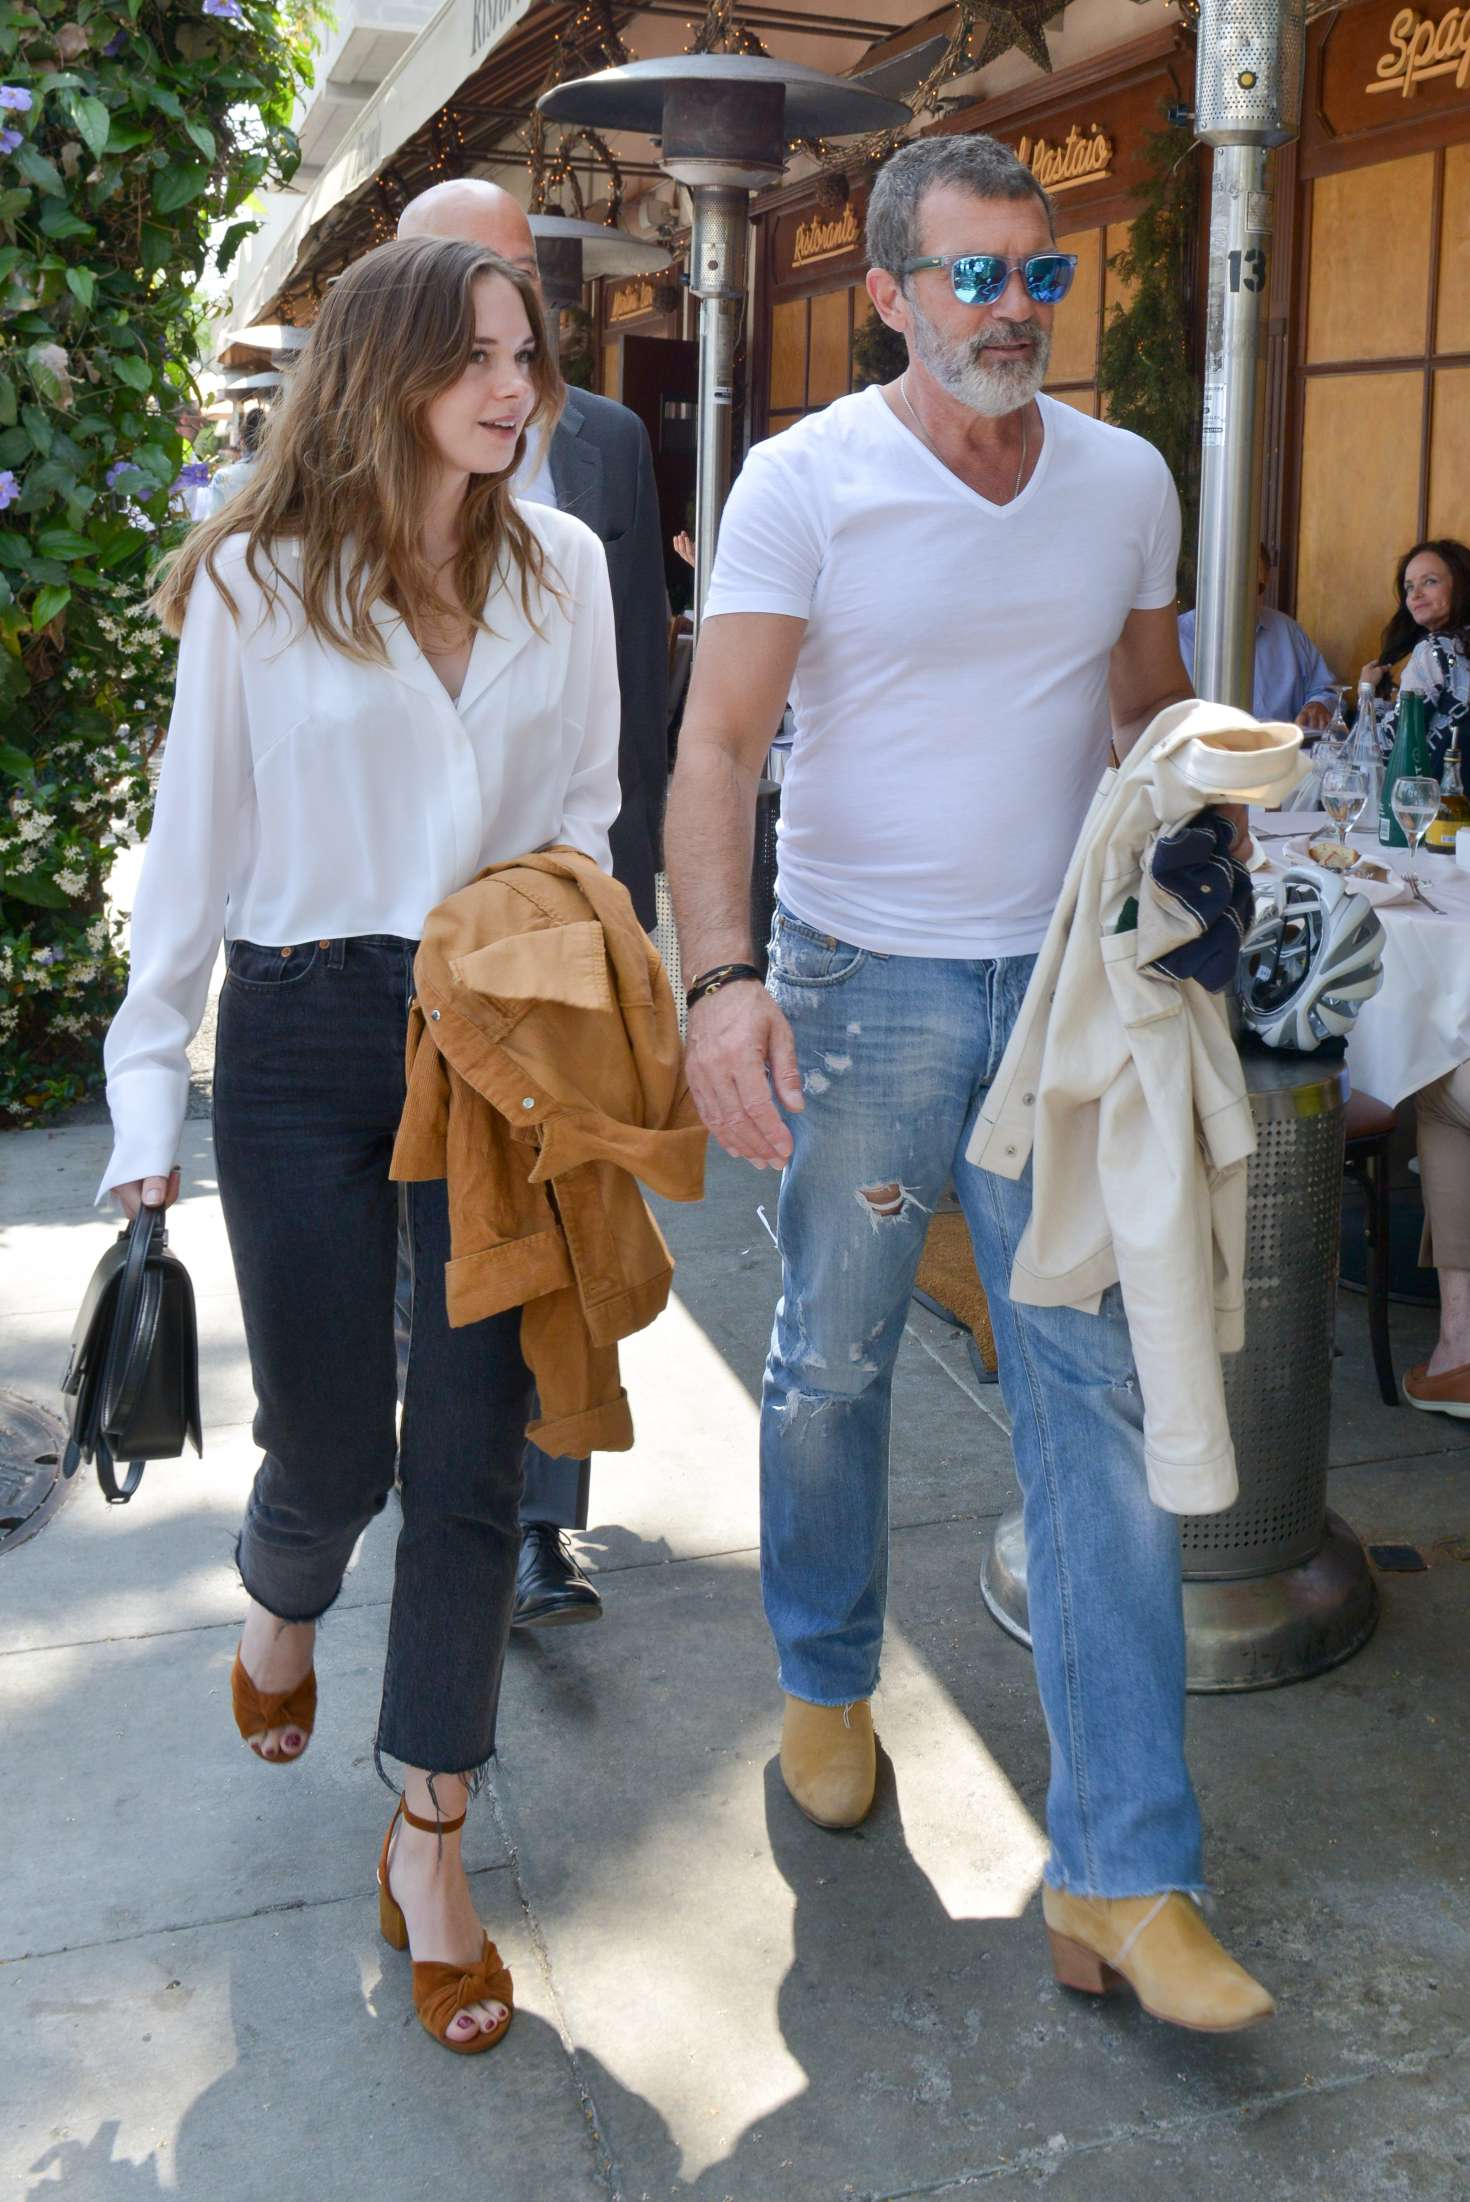 copyright stella banderas has lunch with her father antonio banderas copyright france stella banderas has lunch with her father antonio banderas